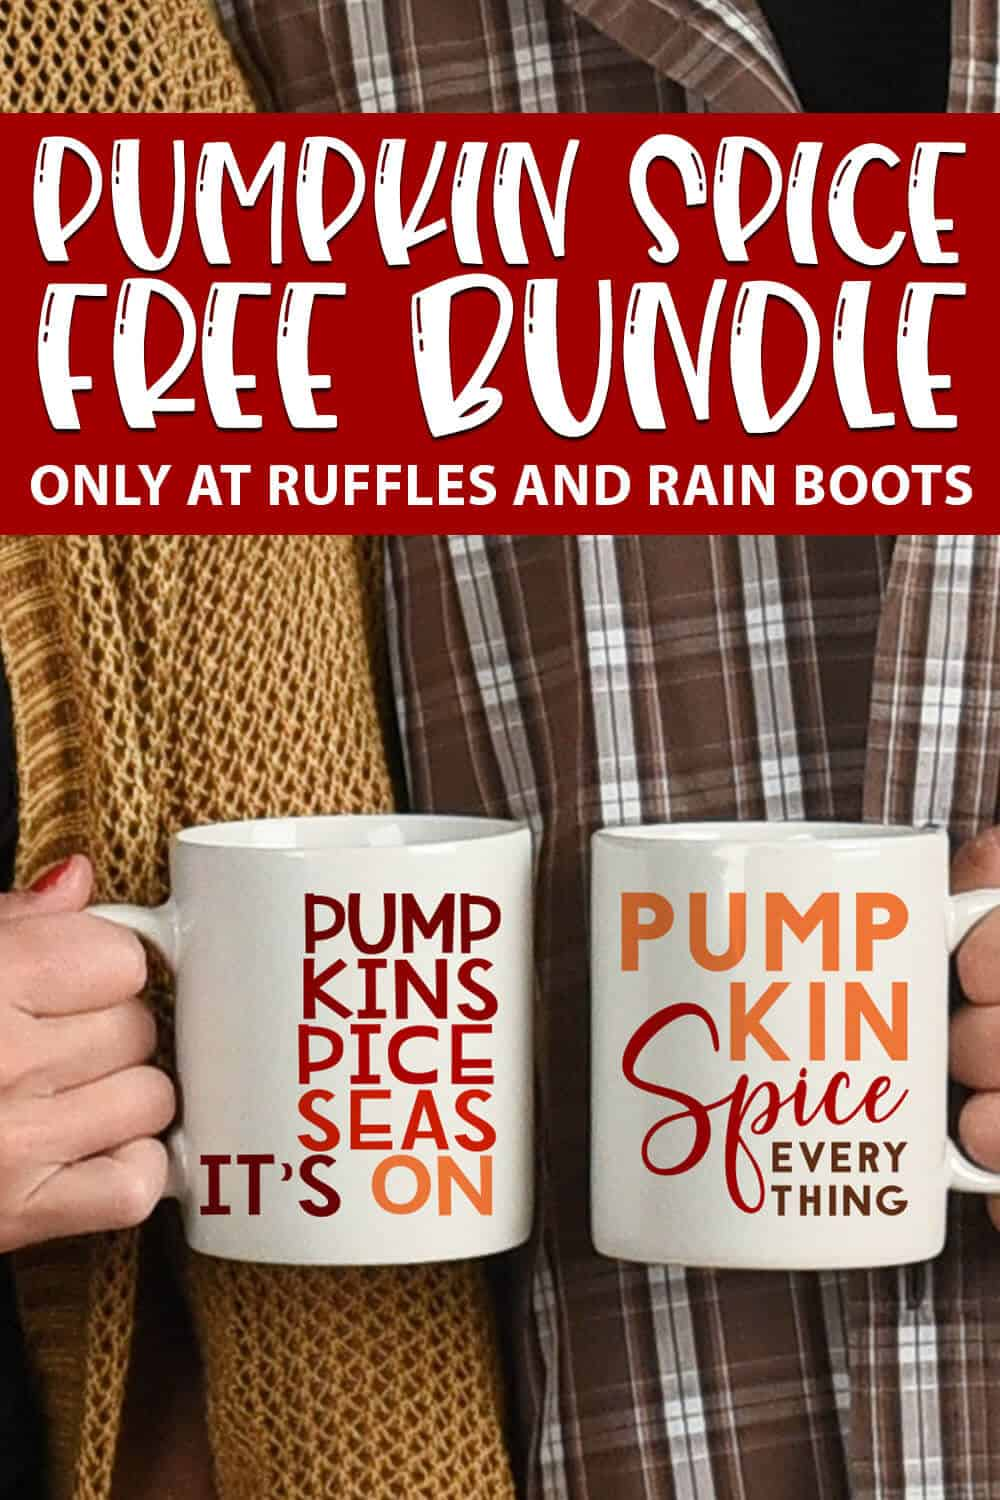 Pumpkin Spice cut file bundle of free cut files for cricut or silhouette with text which reads pumpkin spice free bundle